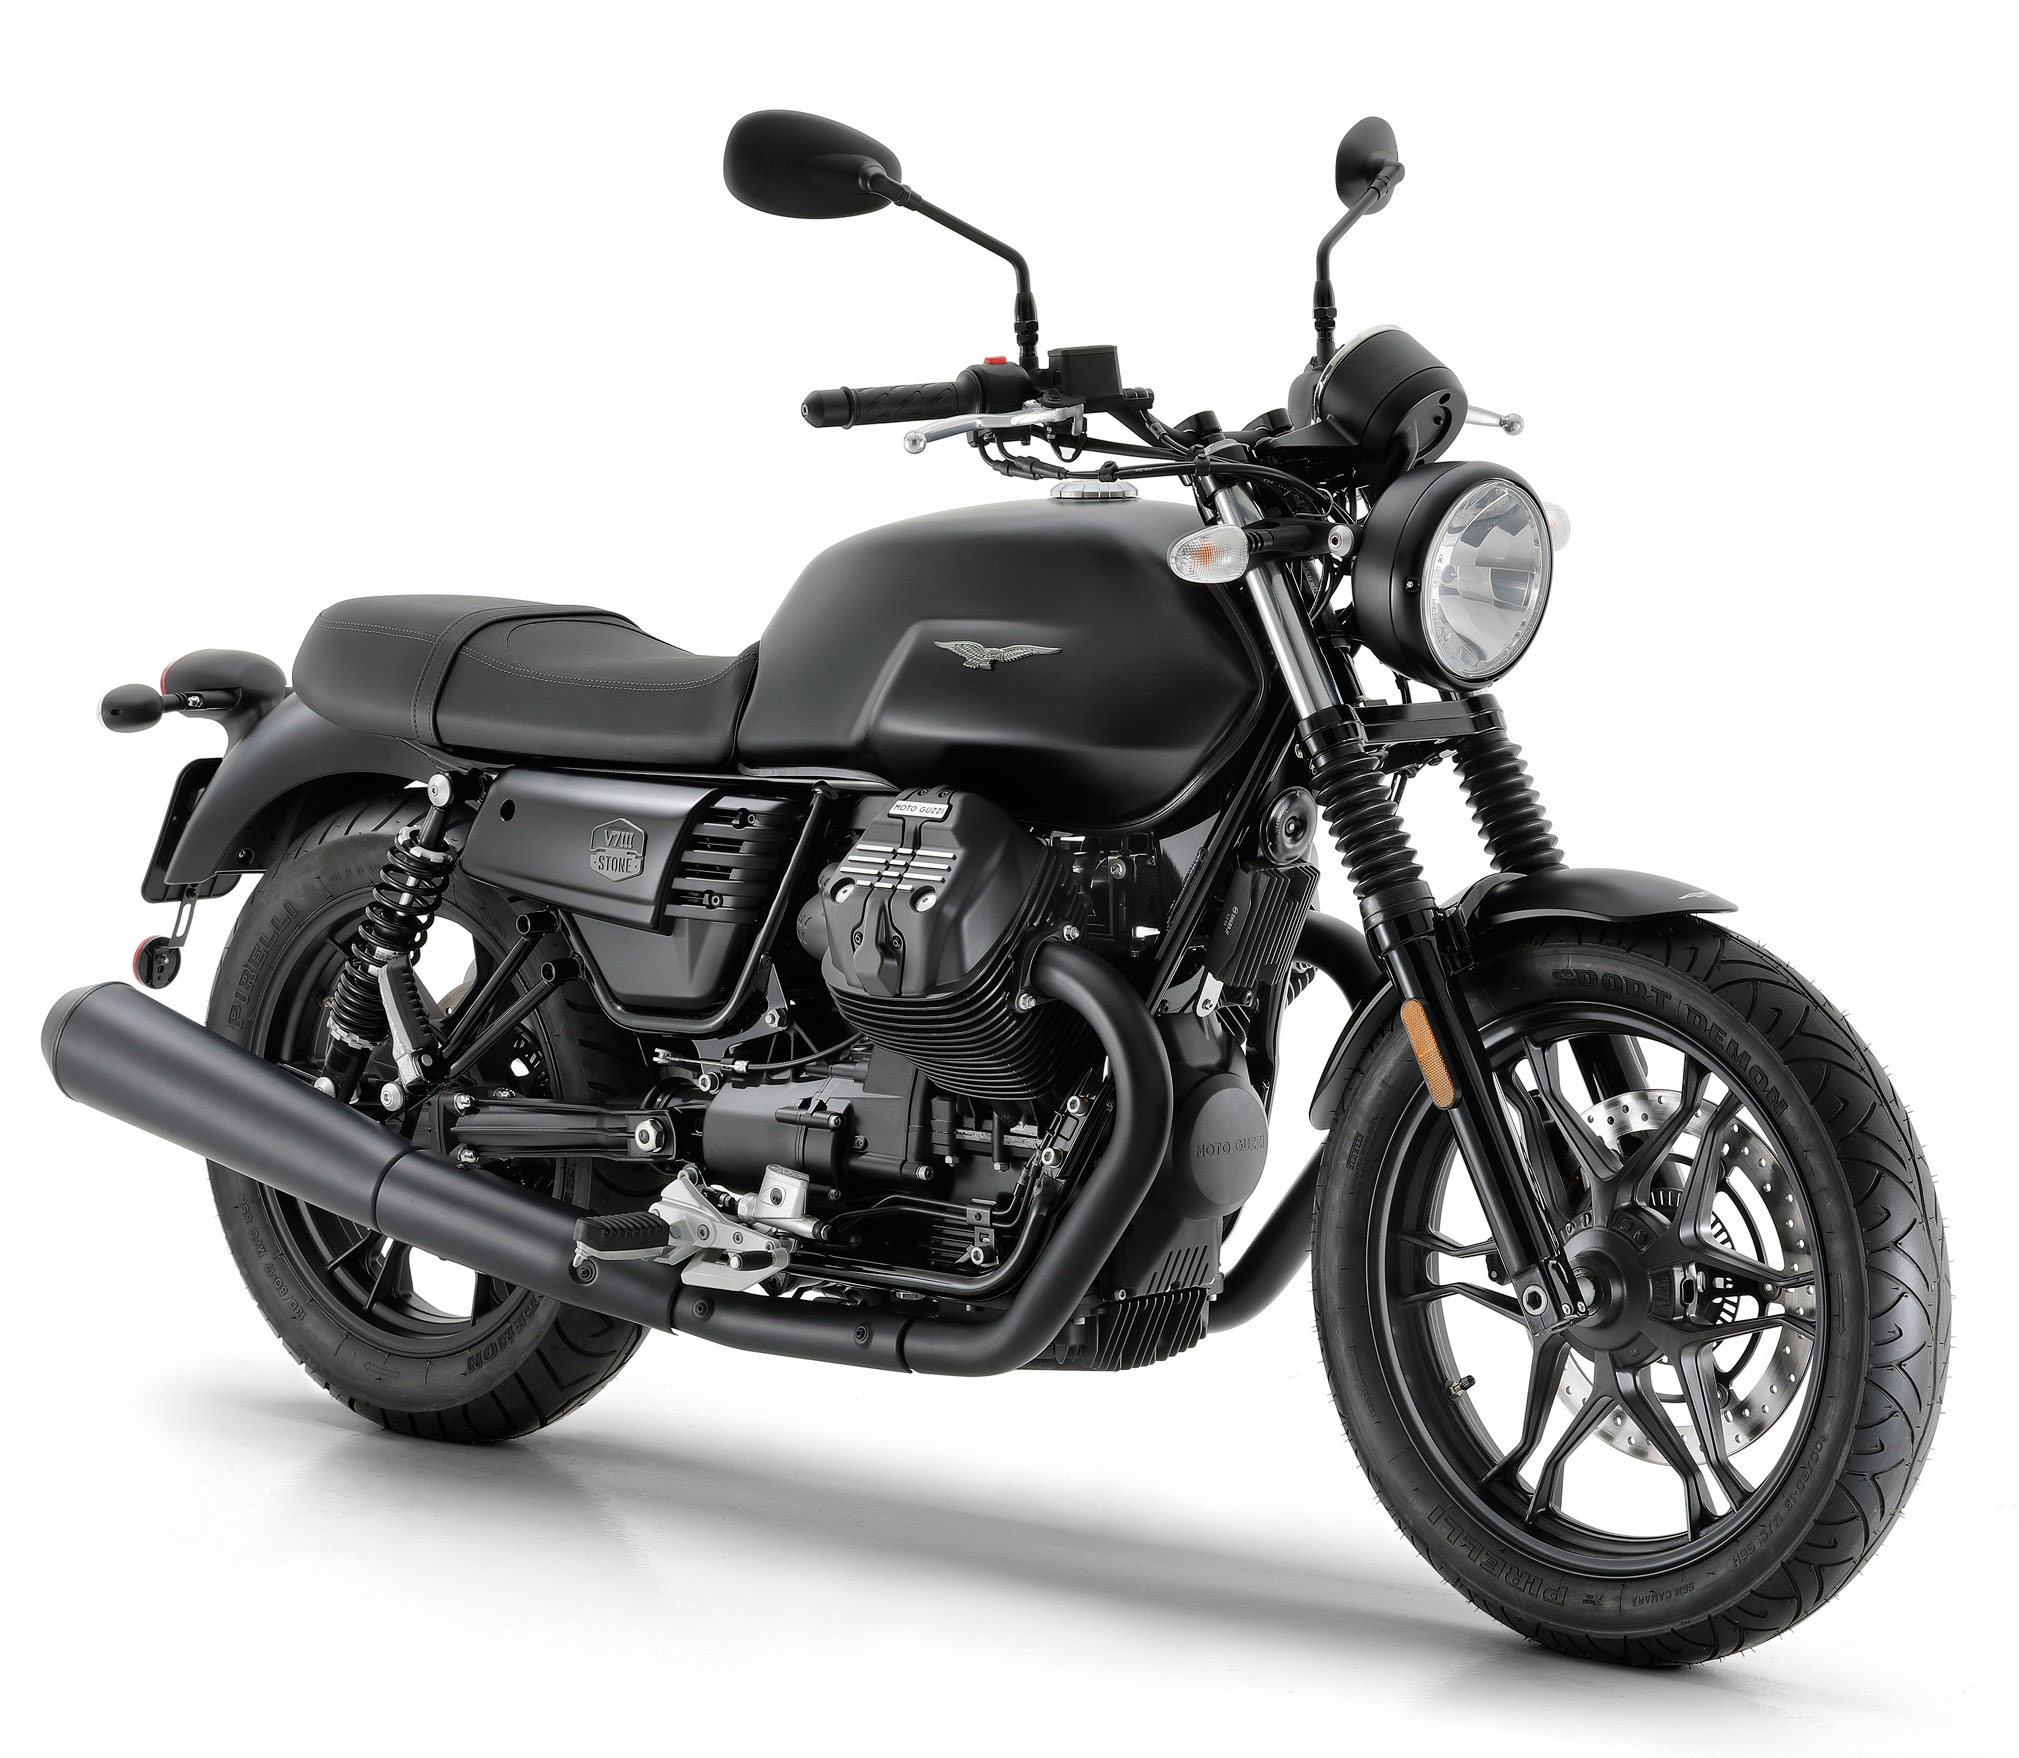 2019 Moto Guzzi V7 III Stone Guide • Total Motorcycle 6d13449be